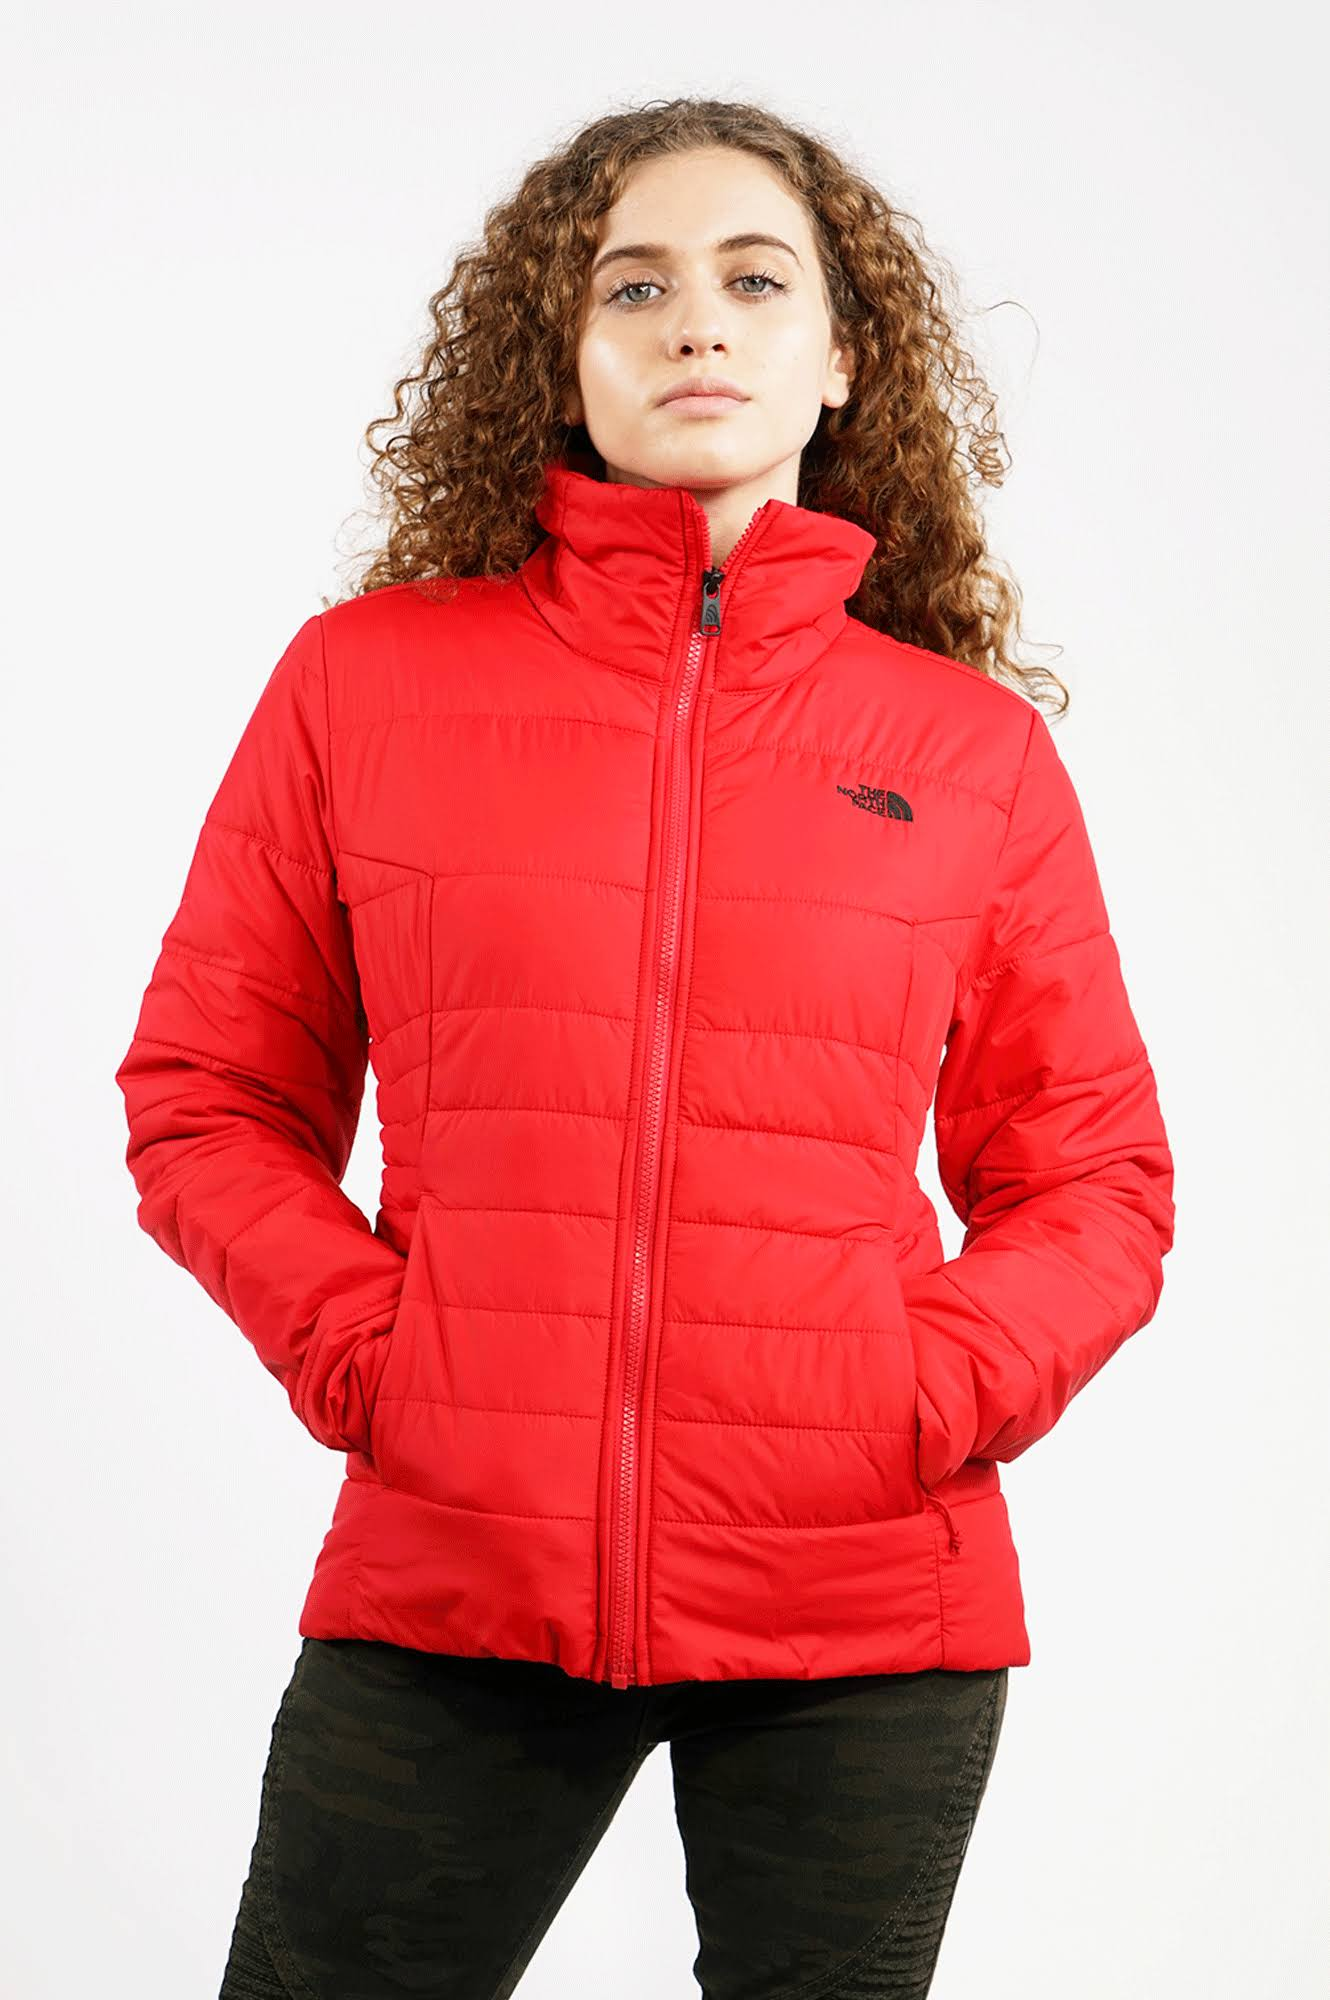 Para Red Nf0a35by Chaqueta North M De The Tnf Rd 682 Mujer Harway Face nOx4pO7